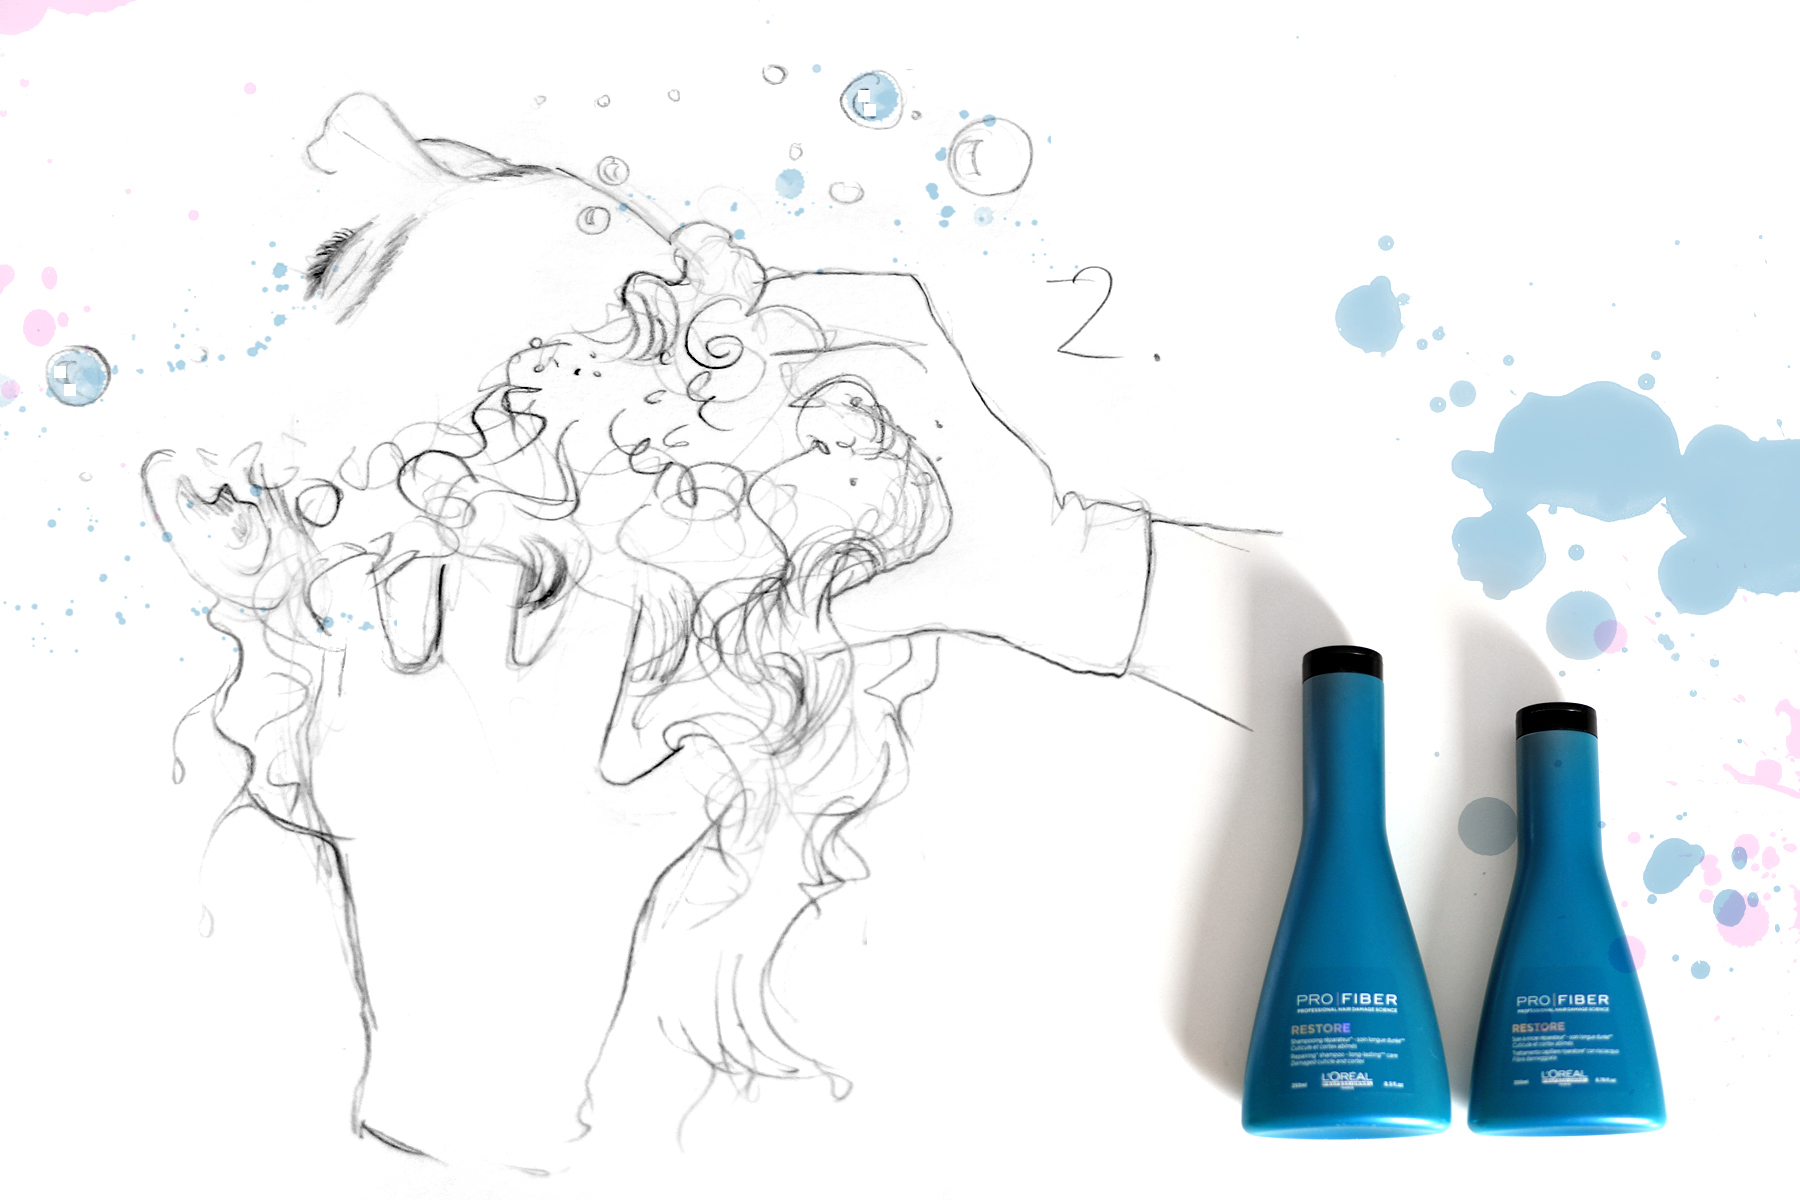 pro fiber l'oréal professionel hair treatment neue pflegerevolution beauty beautyblogger düsseldorf ricarda schernus blog illustration drawing art cats & dogs berlin 4